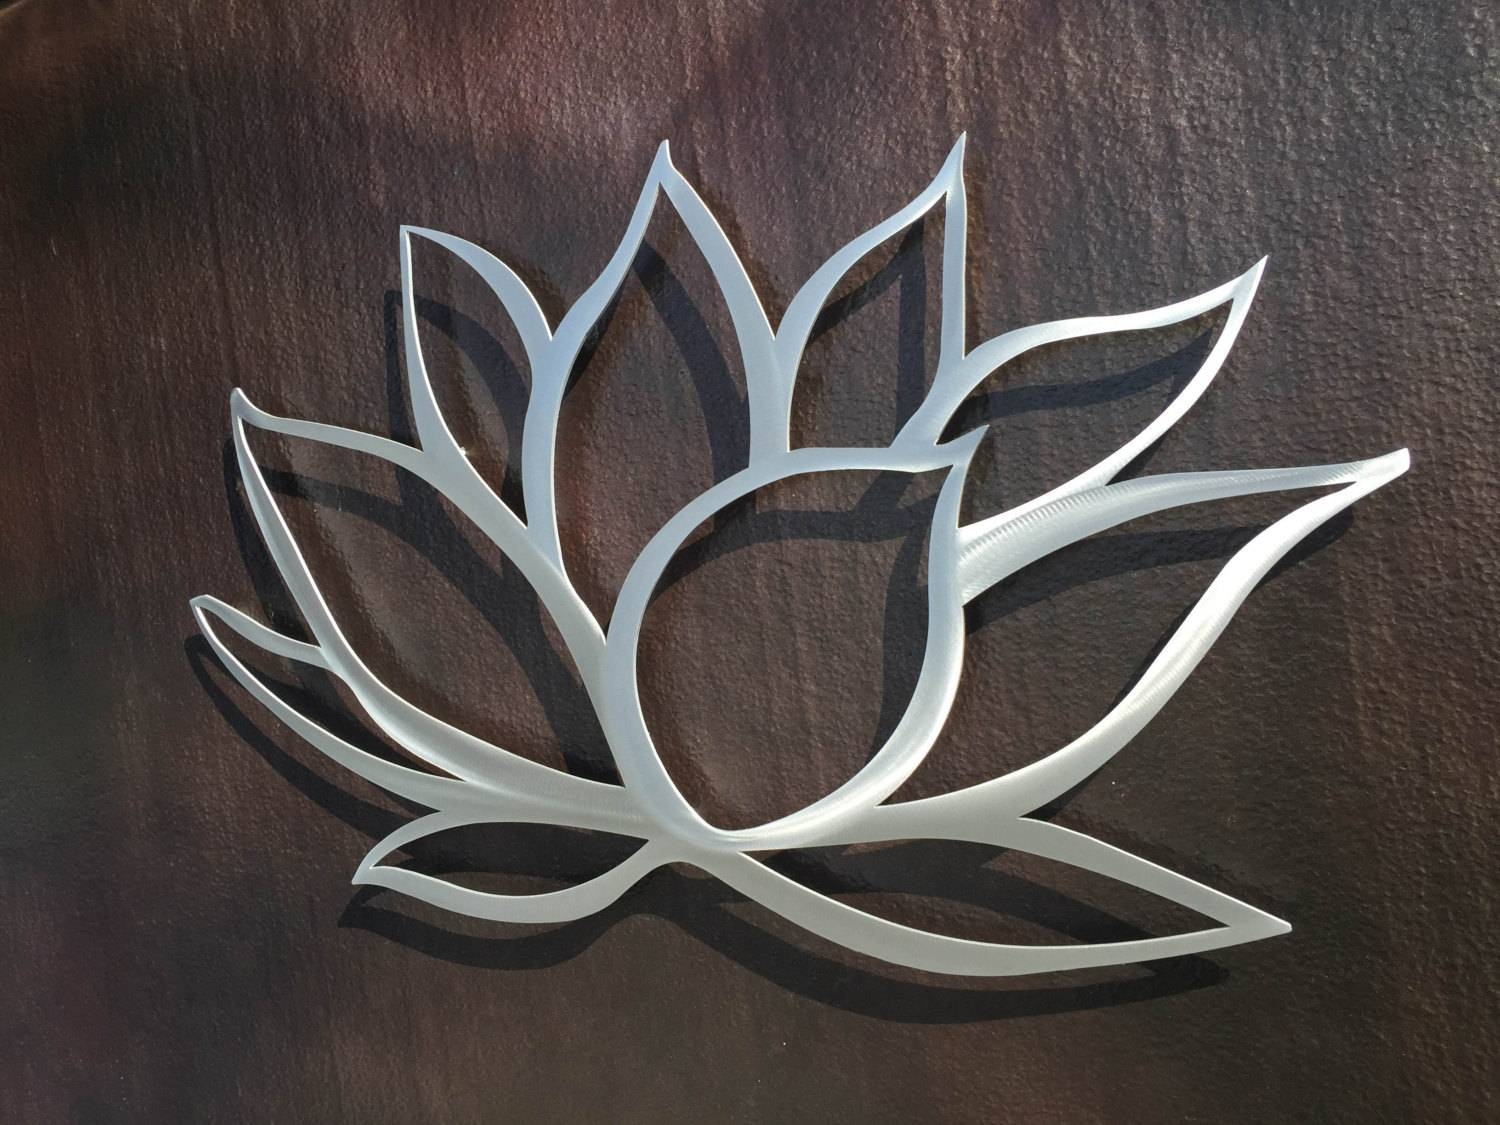 Wall Design: Metal Wall Decorations Inspirations (View 23 of 25)